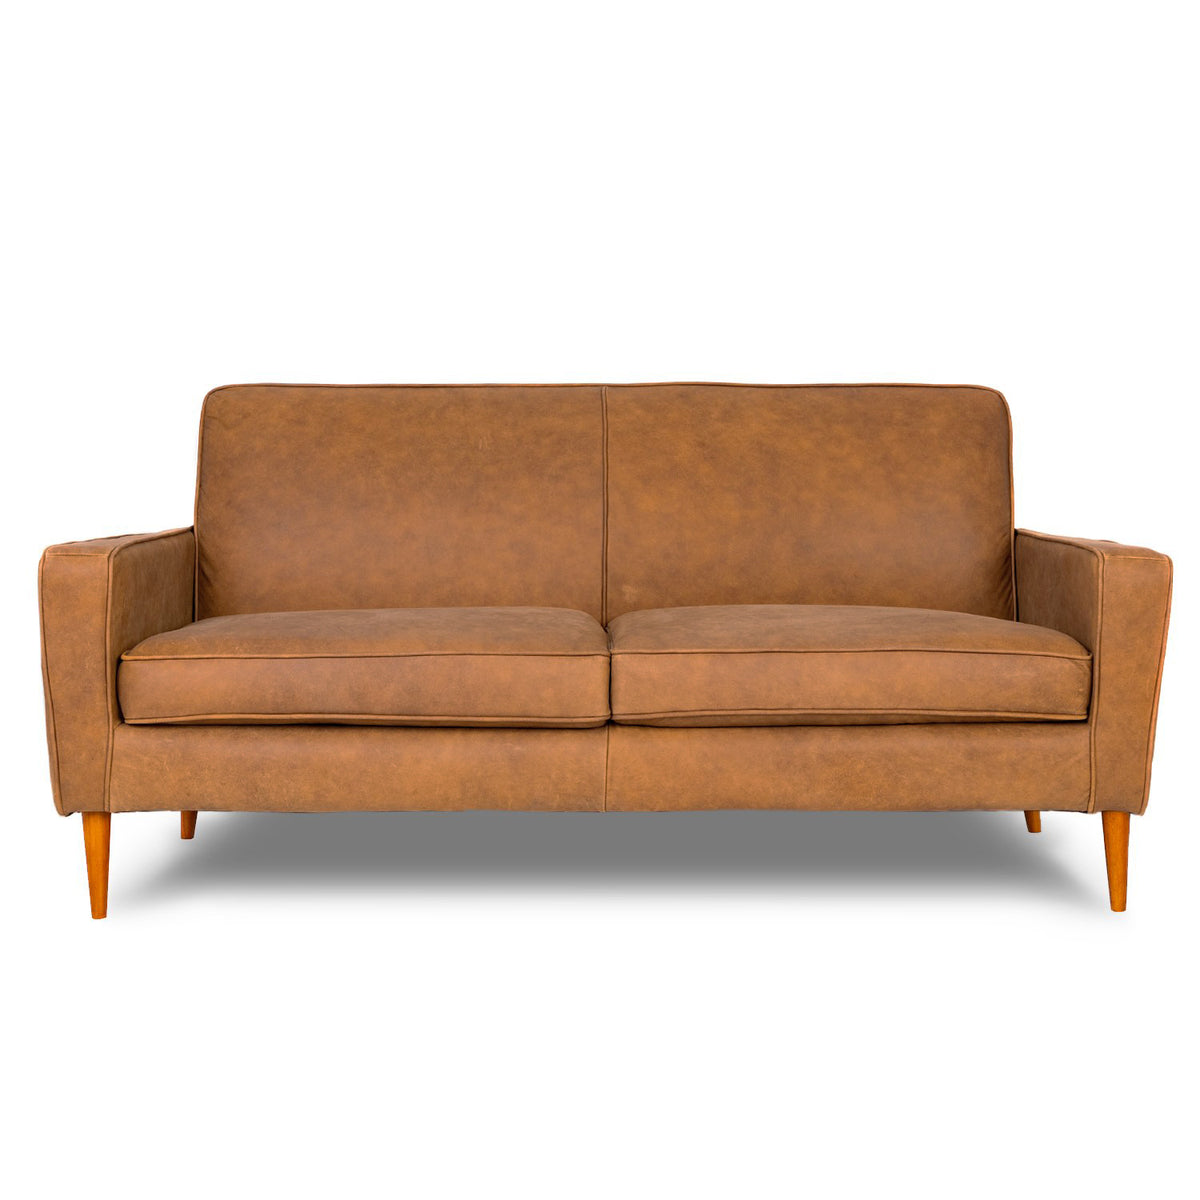 London Leather 3 Seat Sofa in Naples Natural